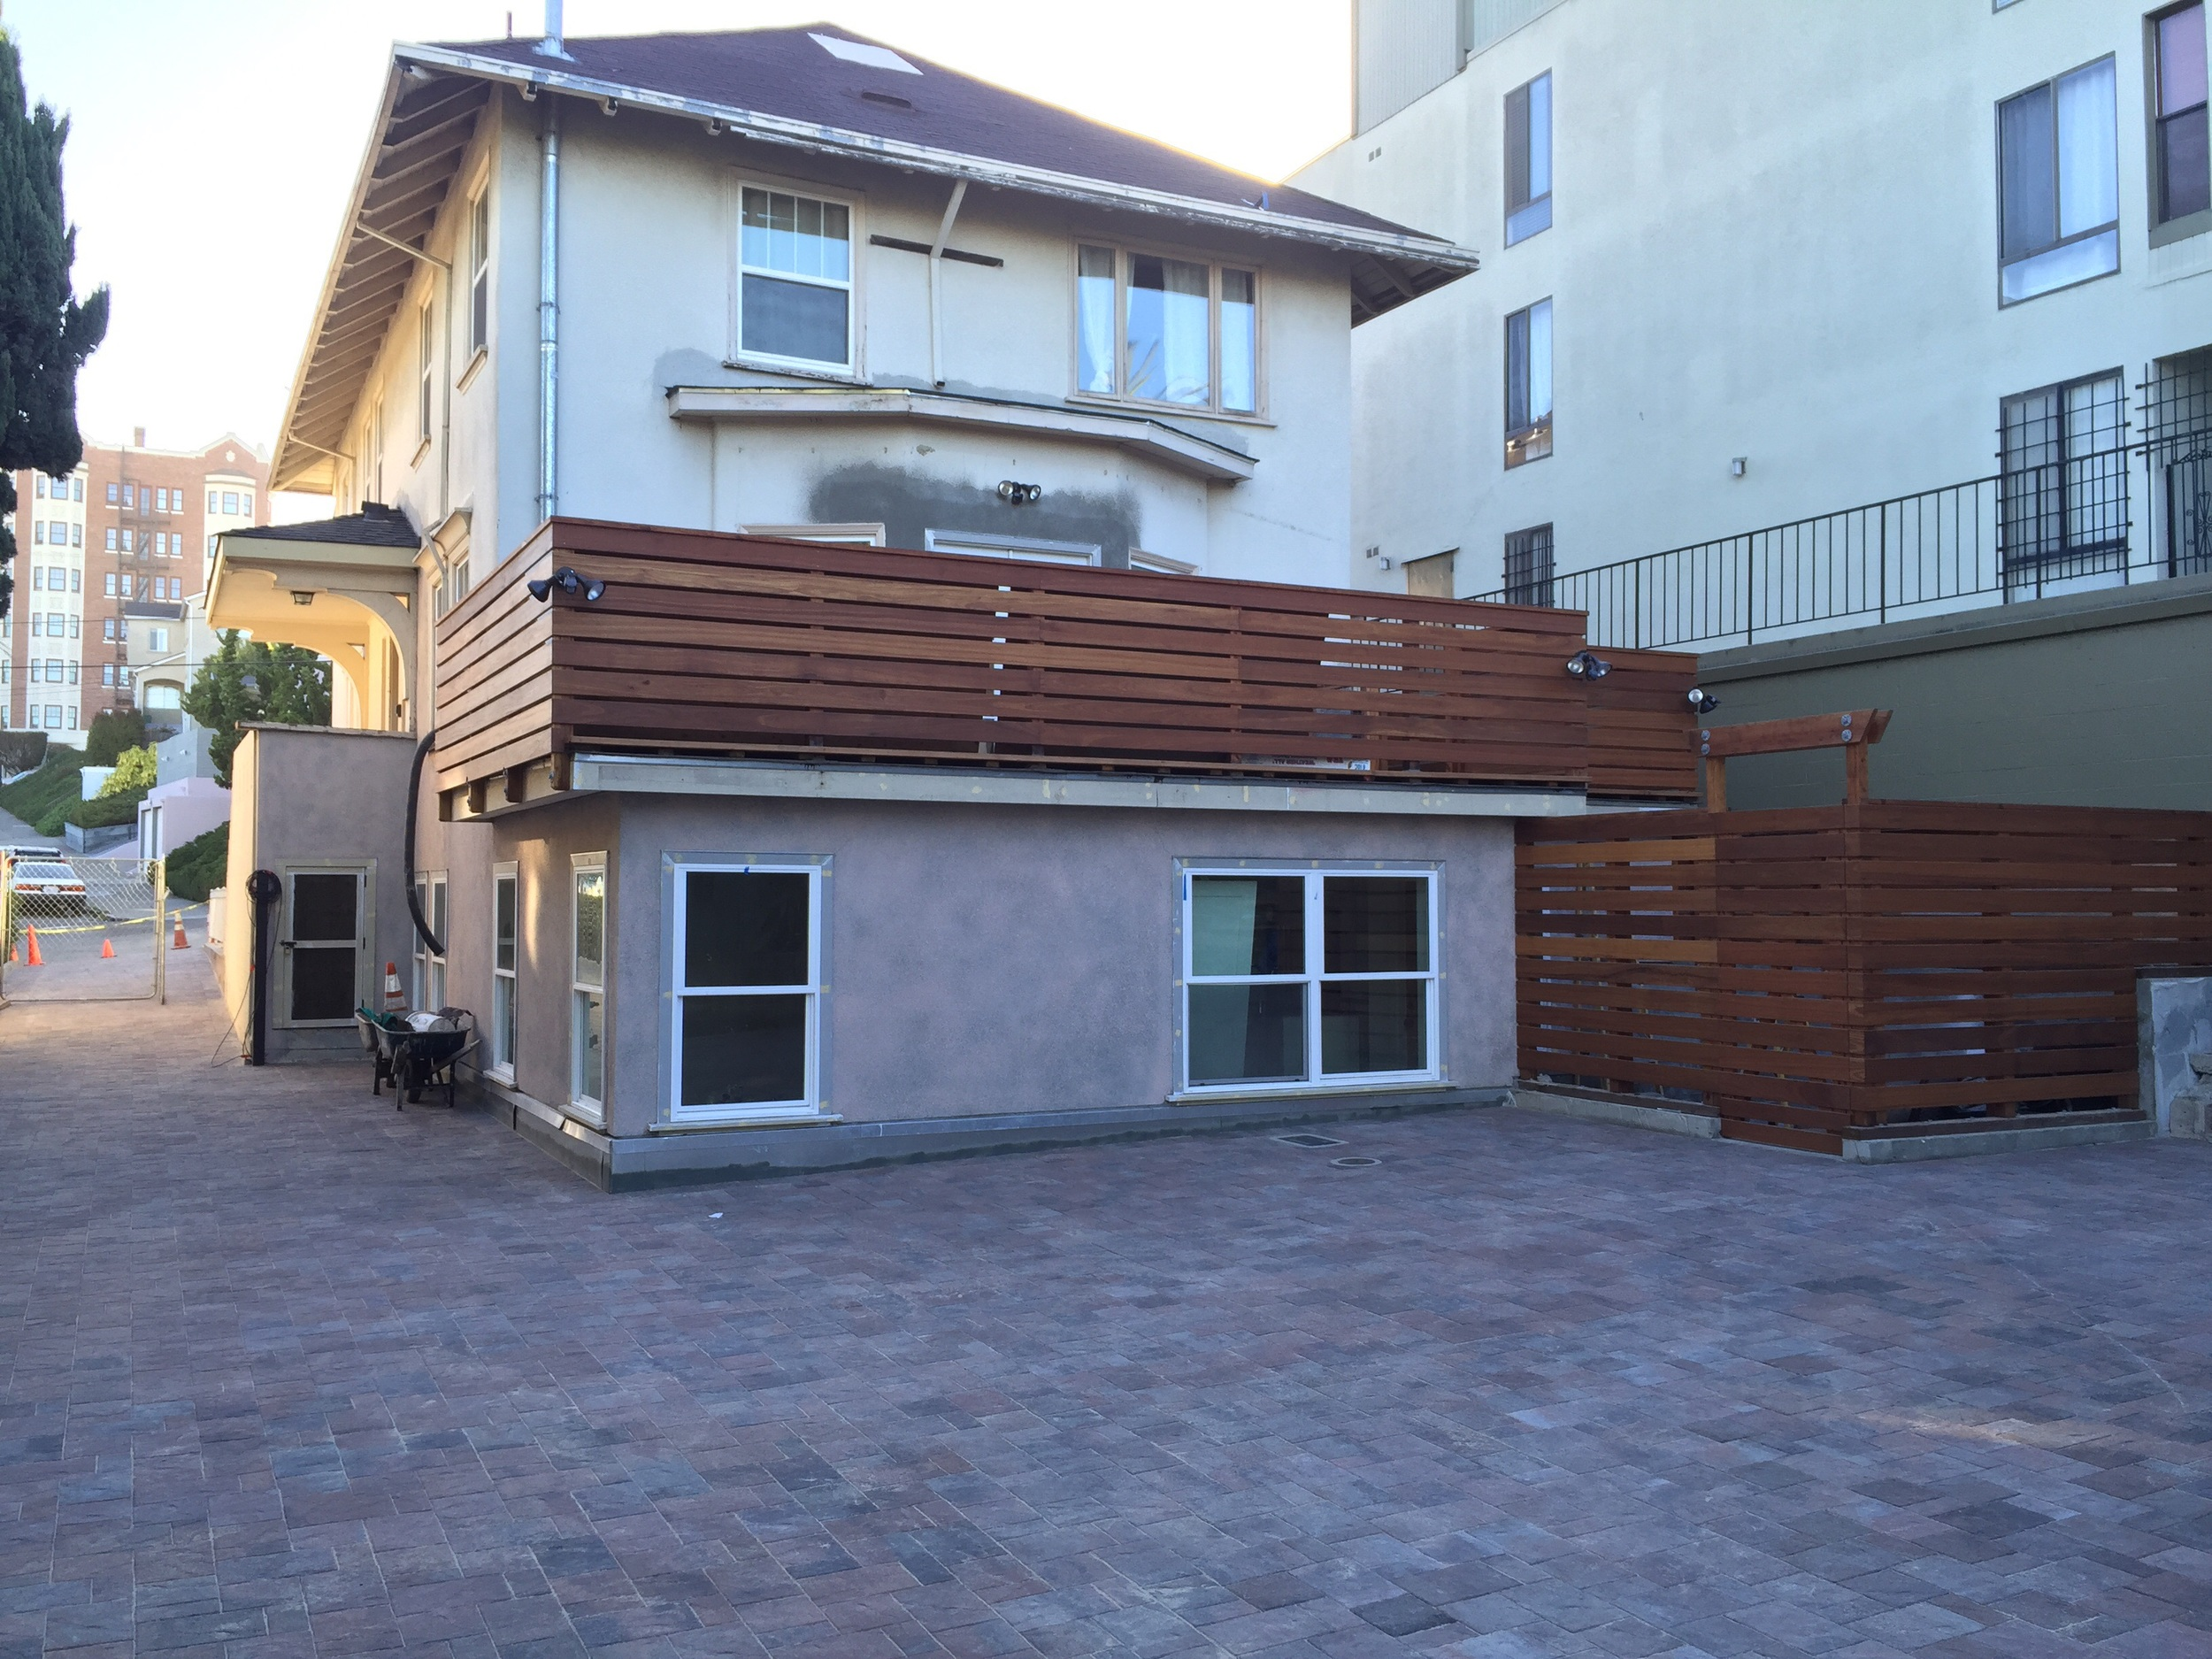 This is the place after stucco, redwood rooftop deck and enclosed private entrance.